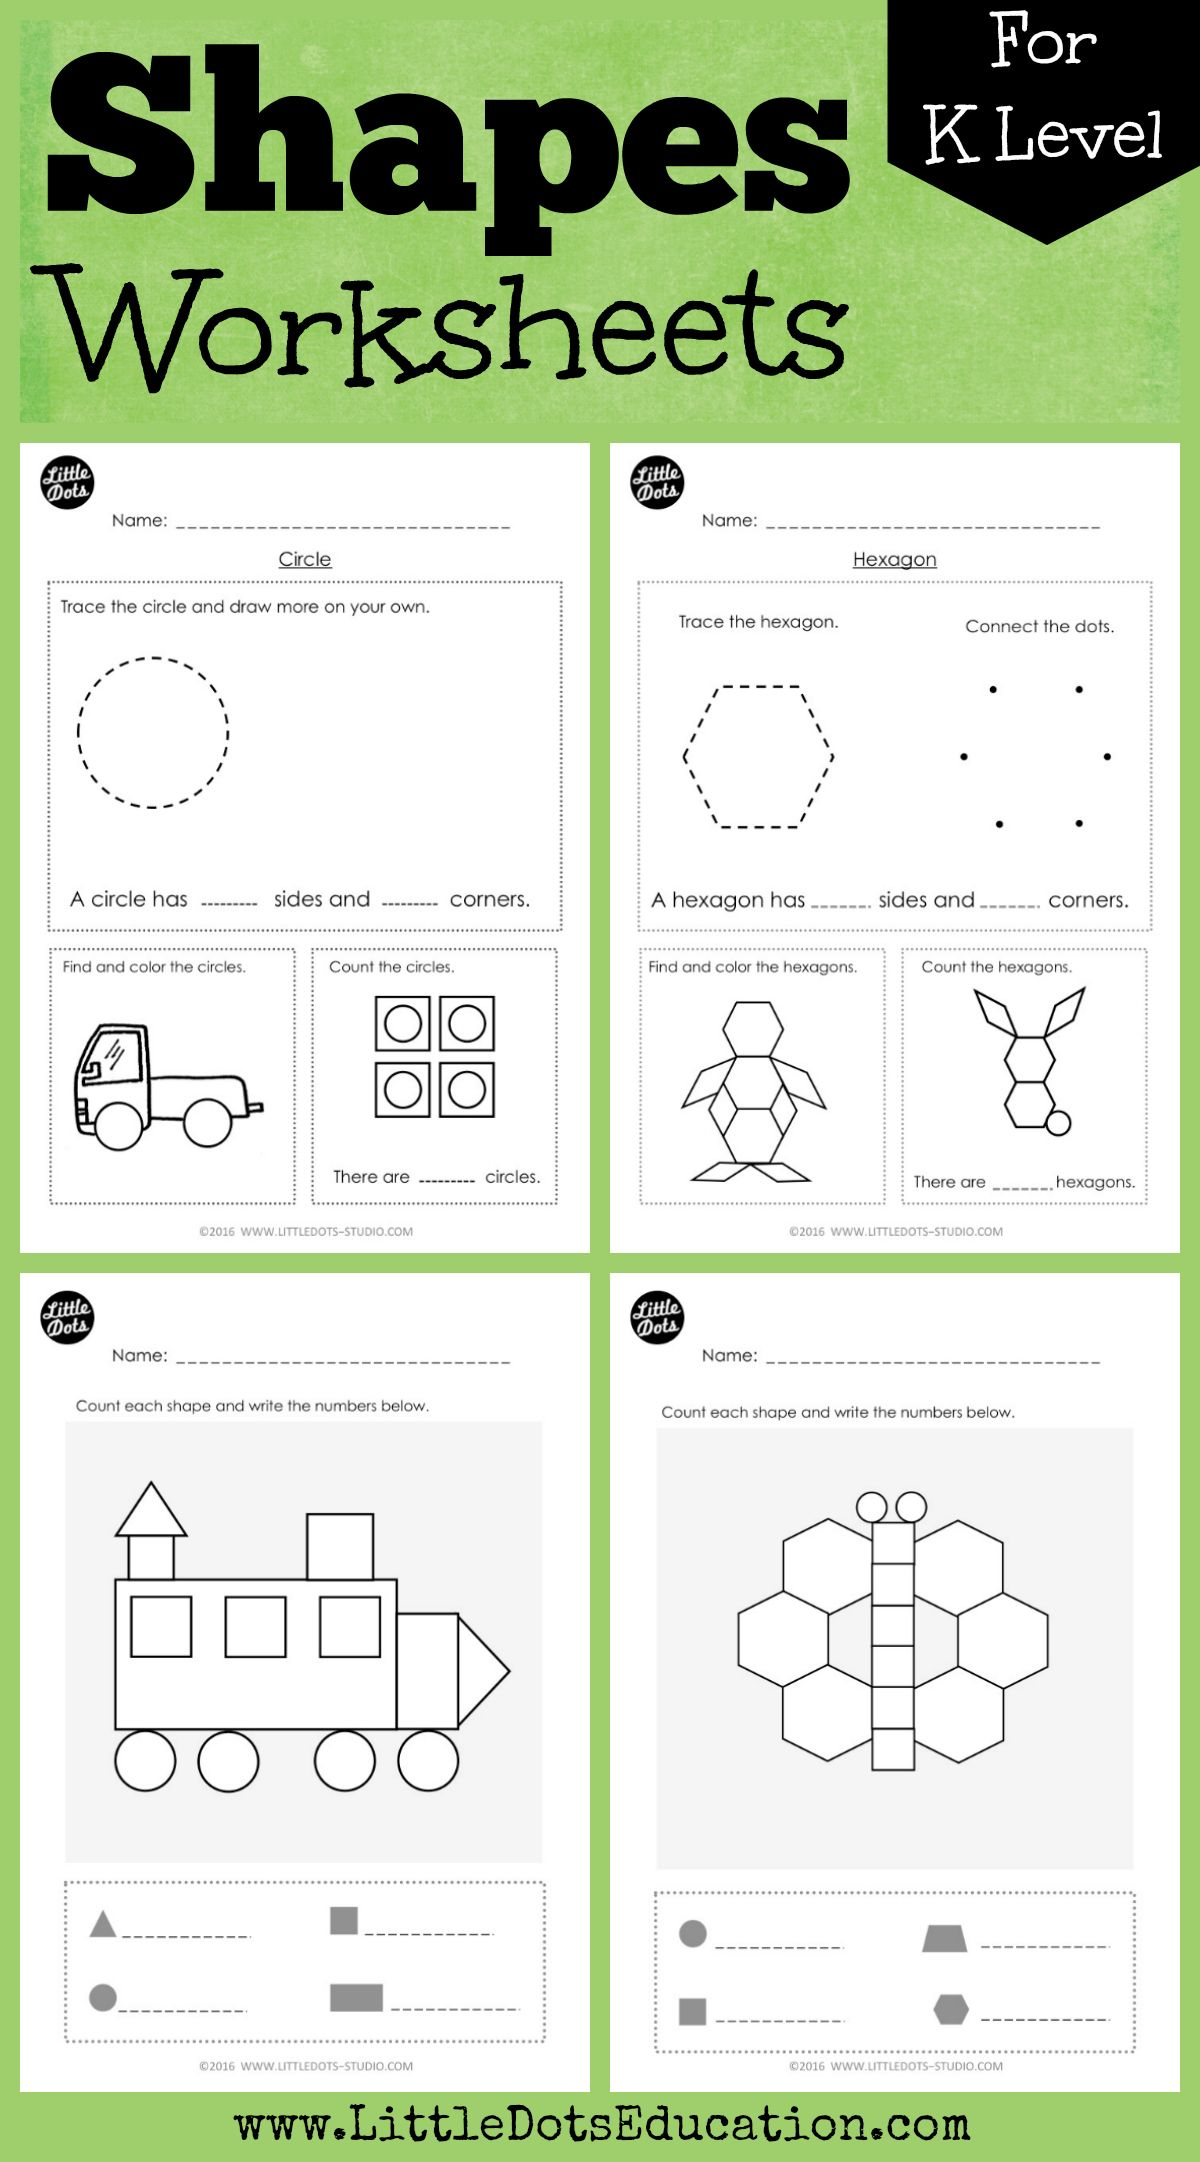 Download Shapes Worksheets And Activities For Kindergarten